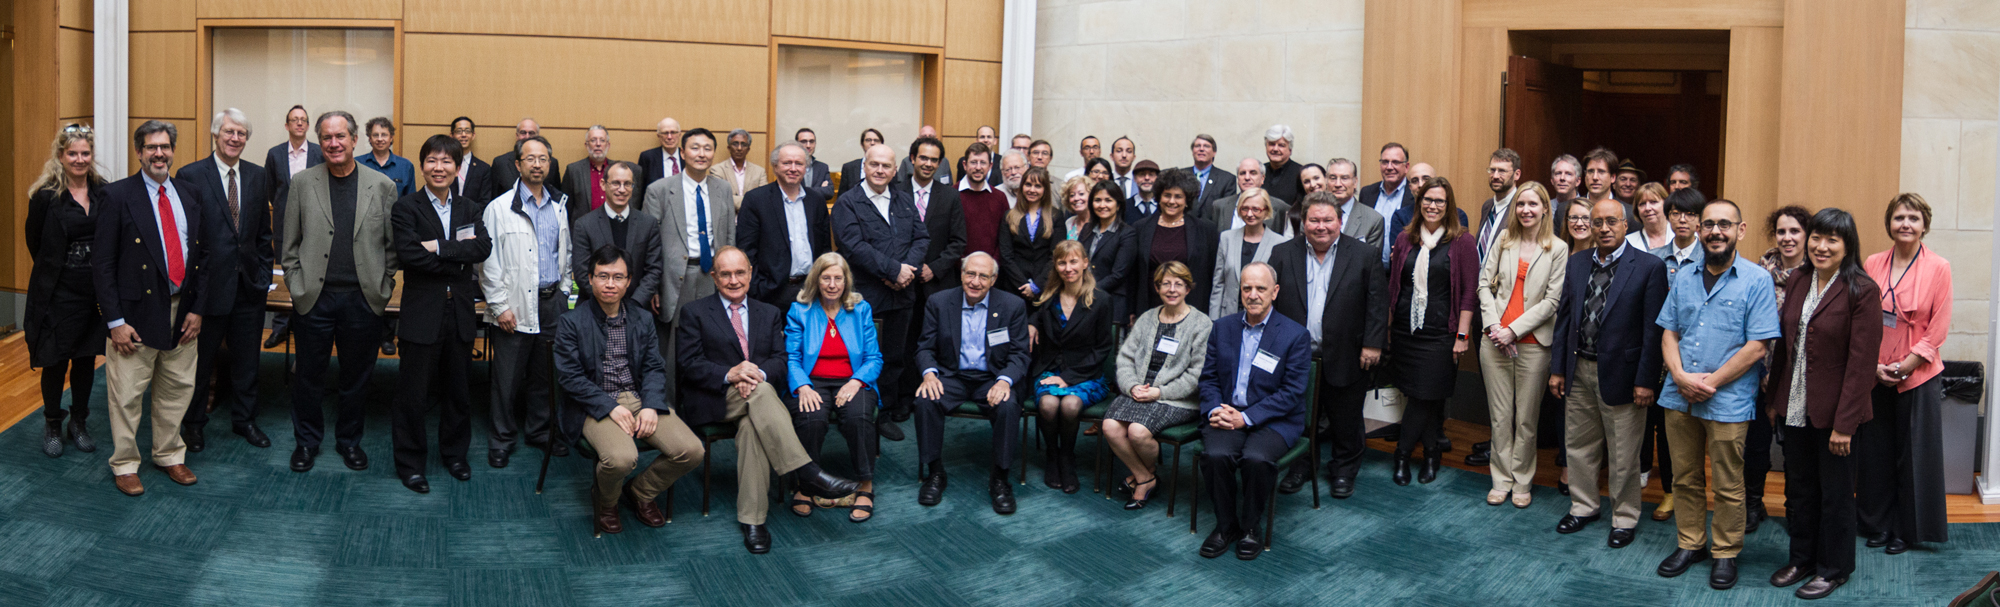 Group Photo from the 2015 Conference.